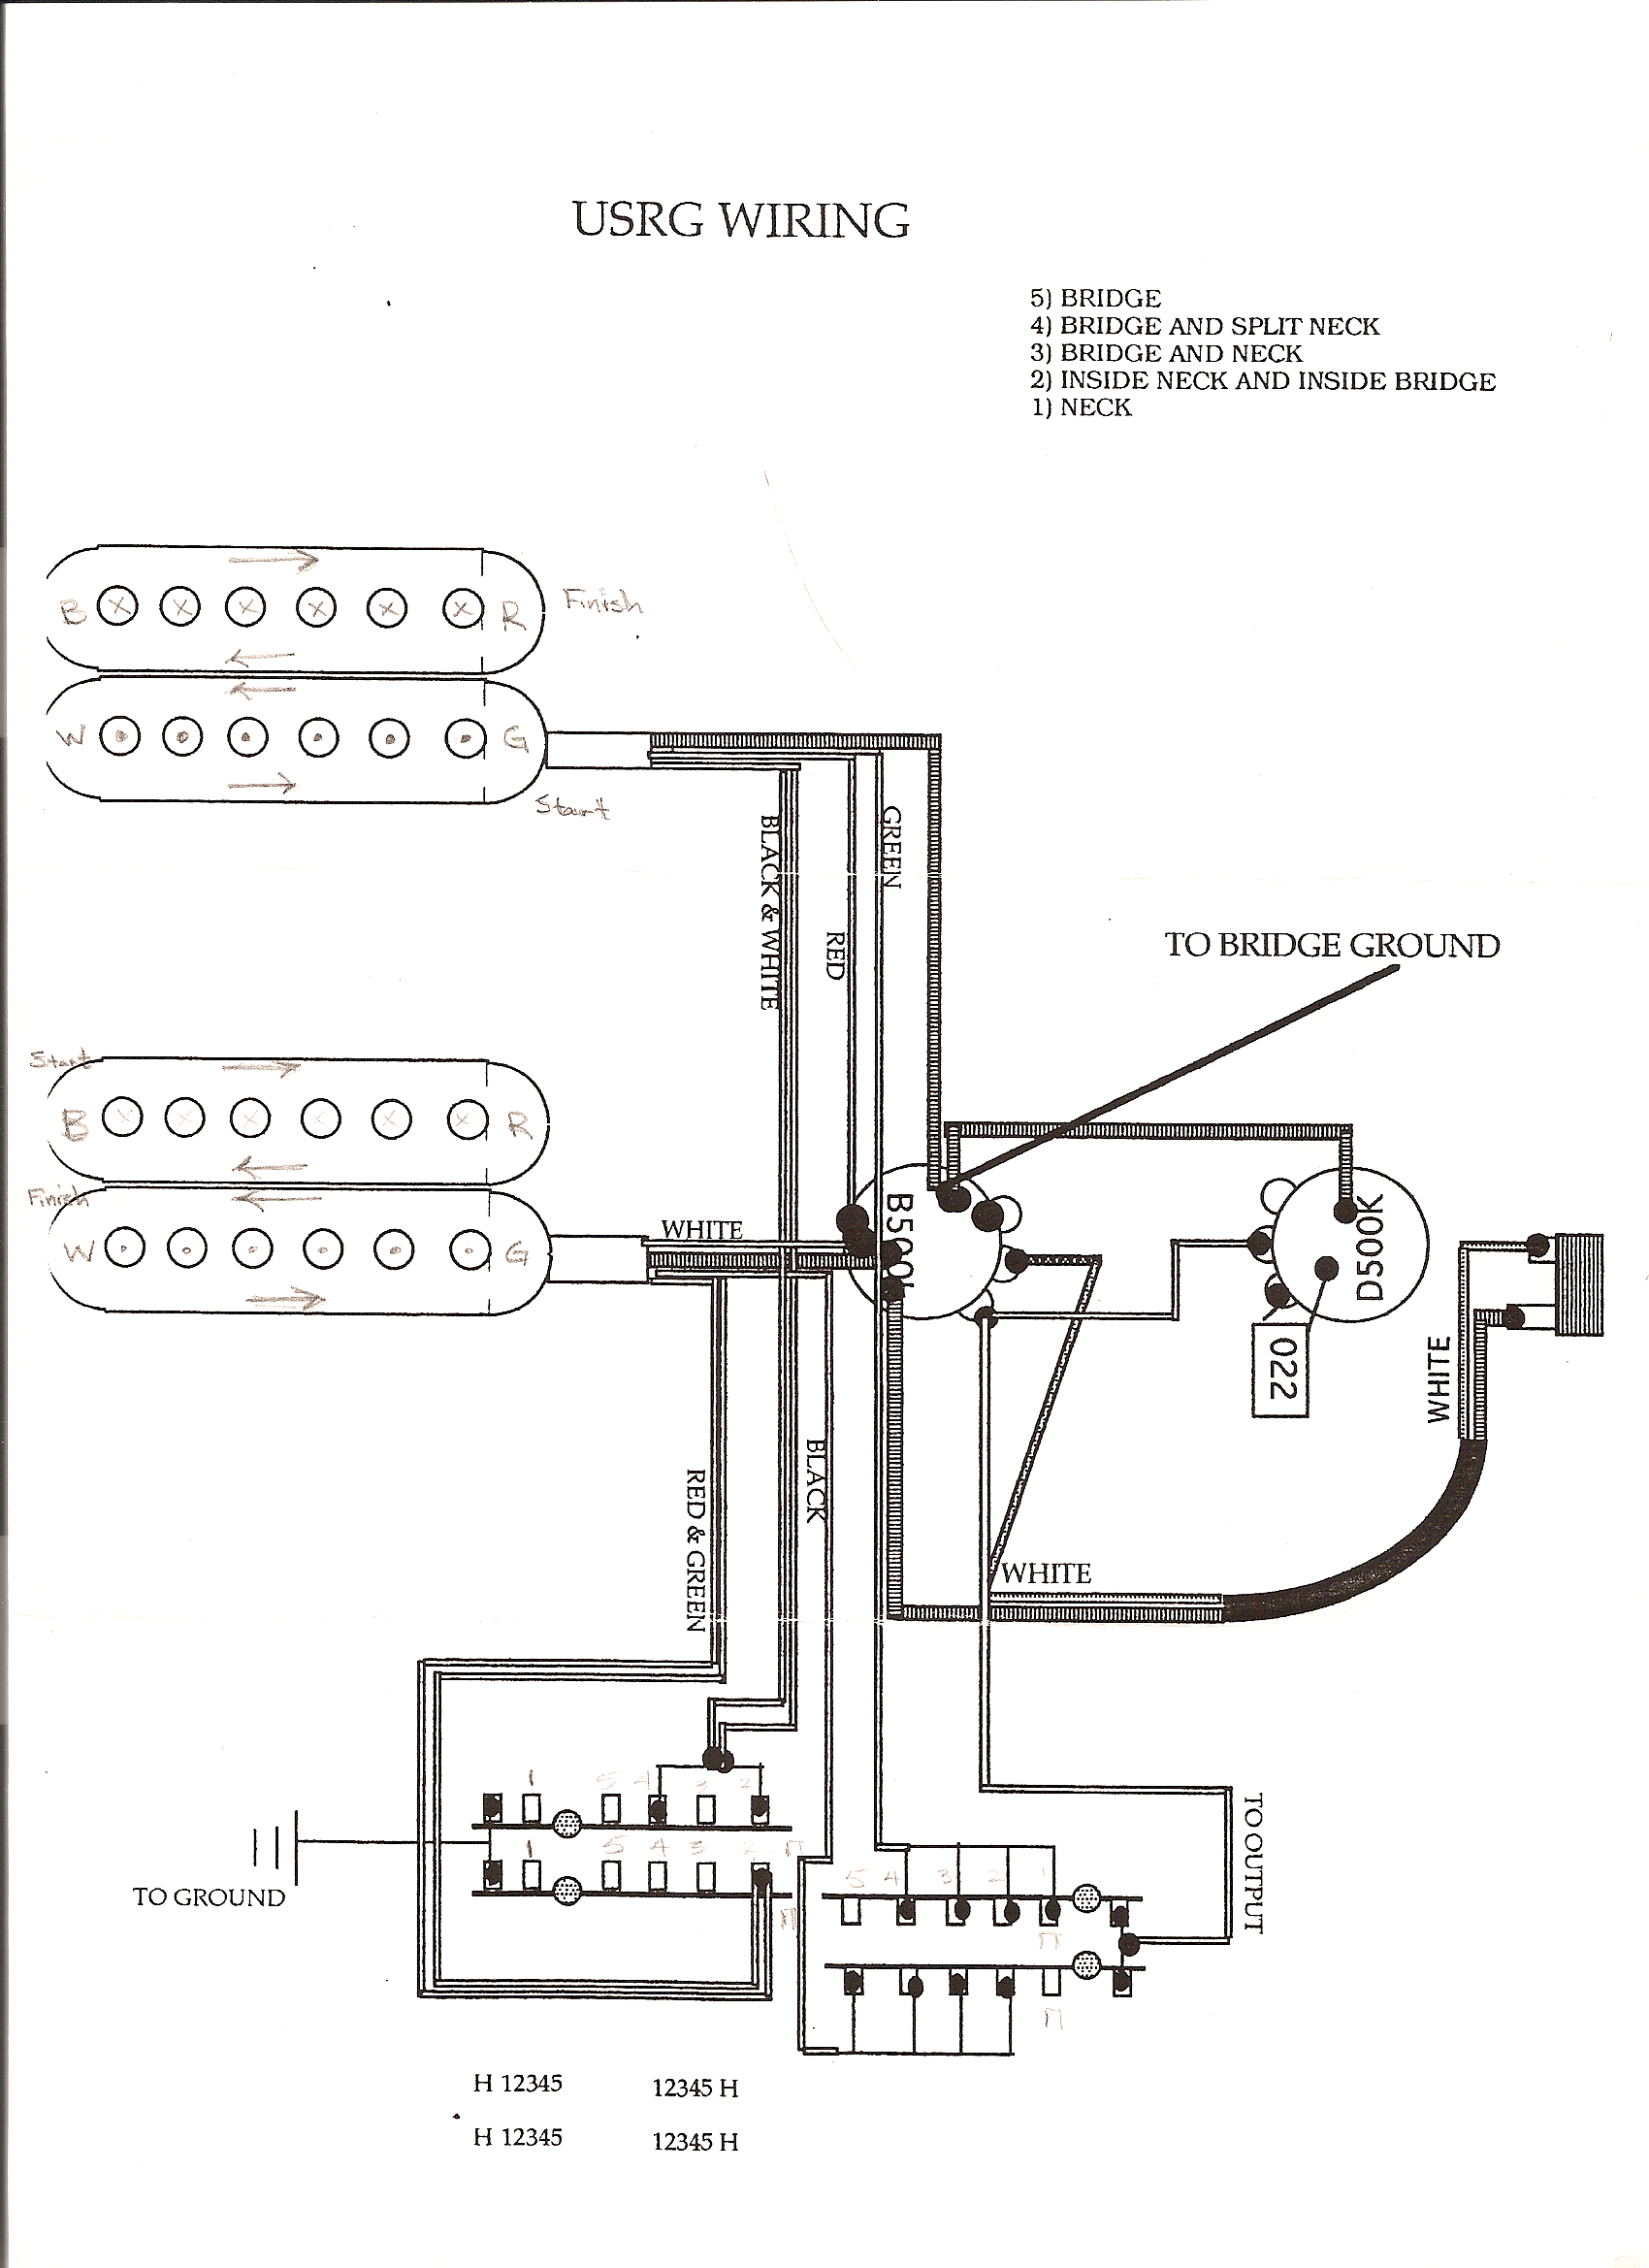 Usrg30 Wiring Diagram